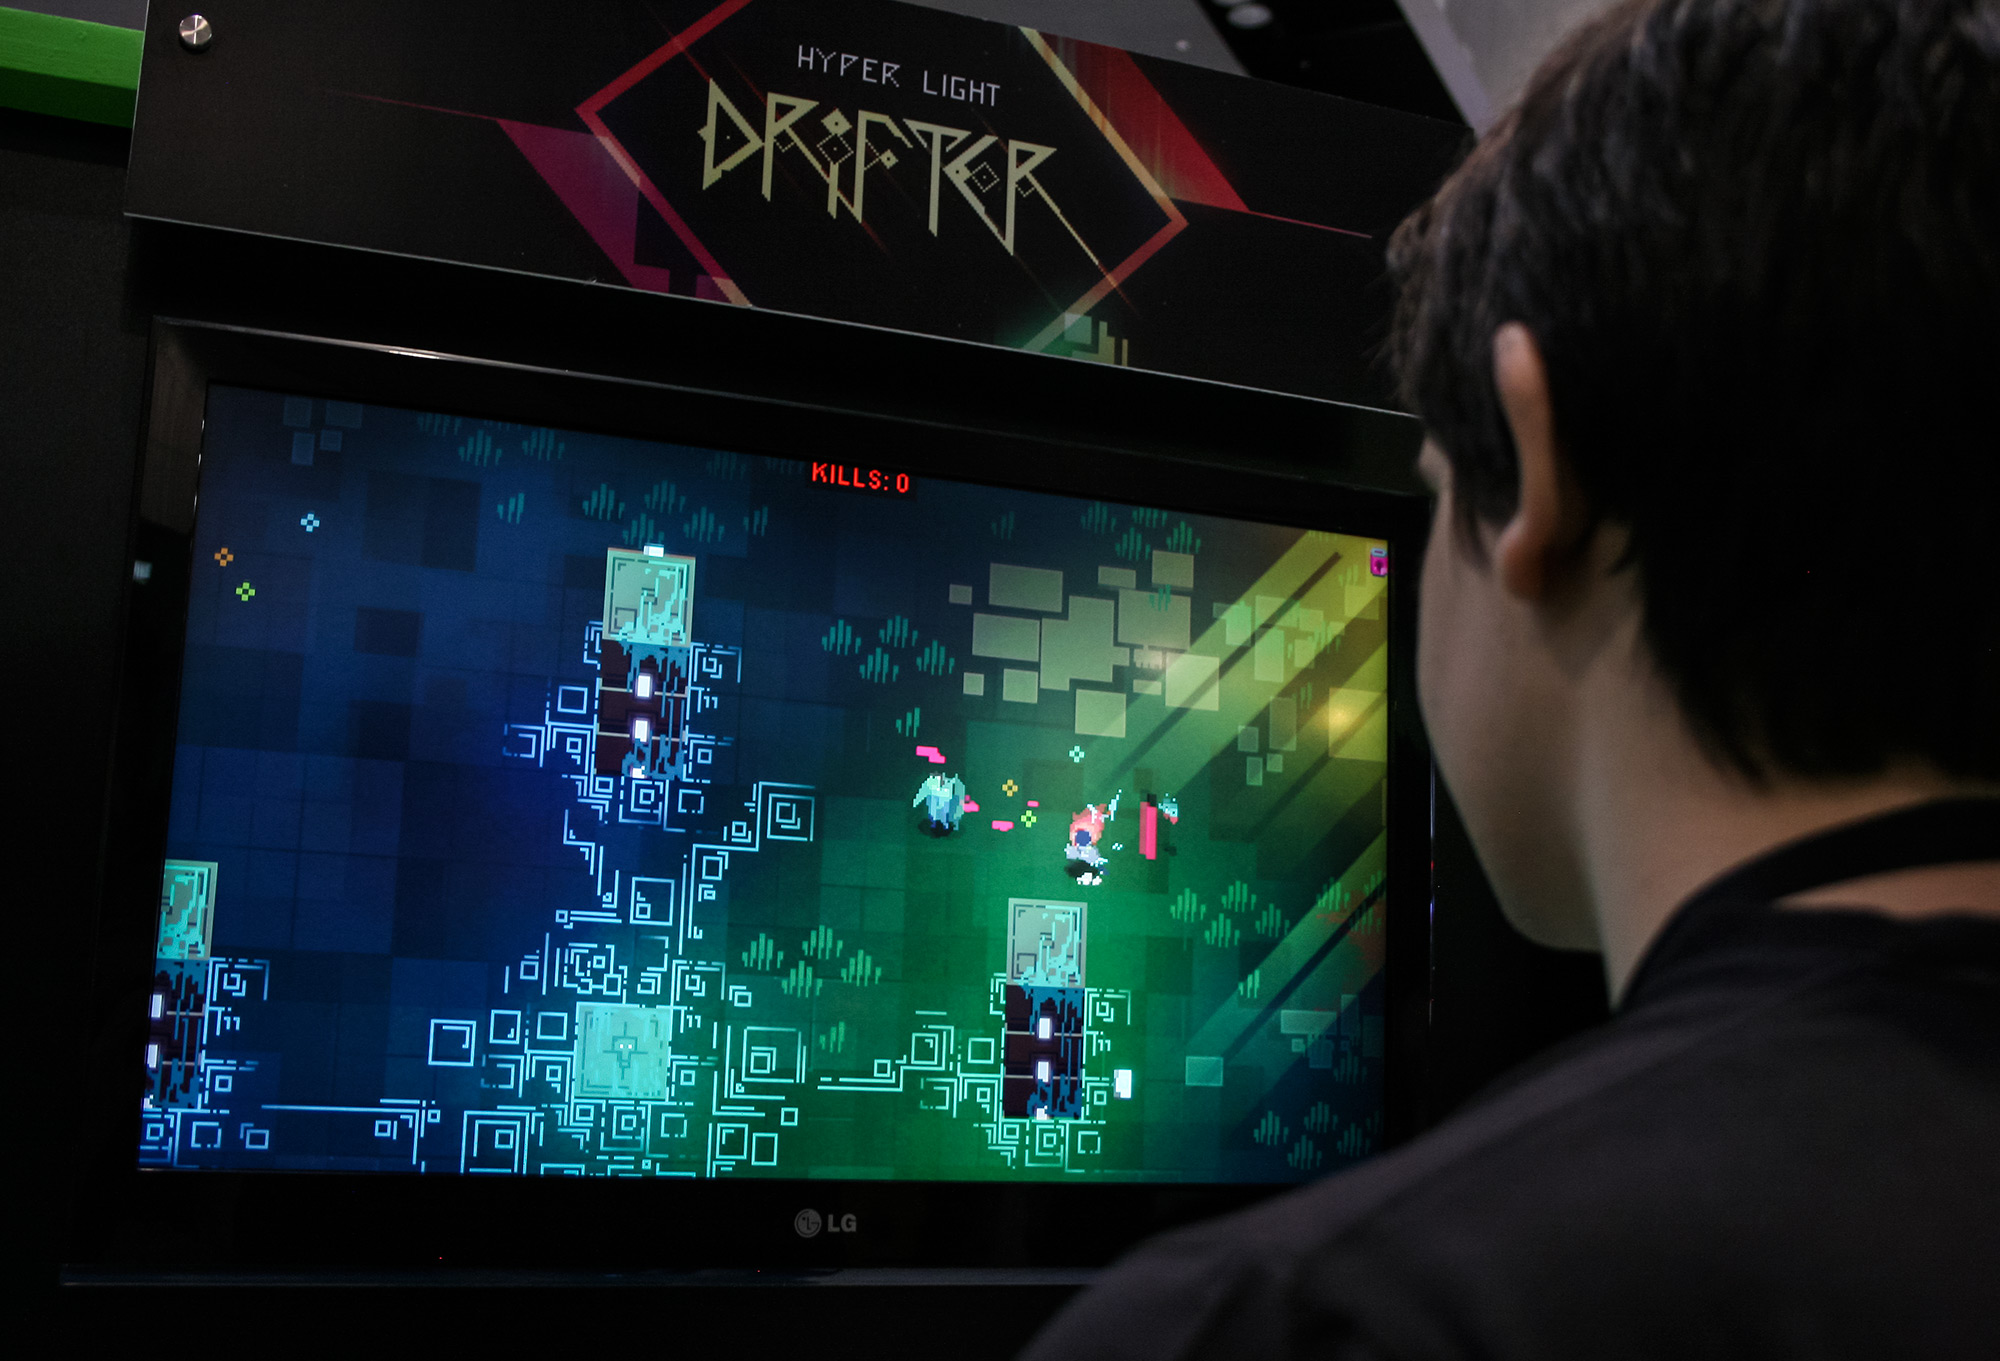 PAX Aus - Melbourne 2014 - Hyper Light Drifter